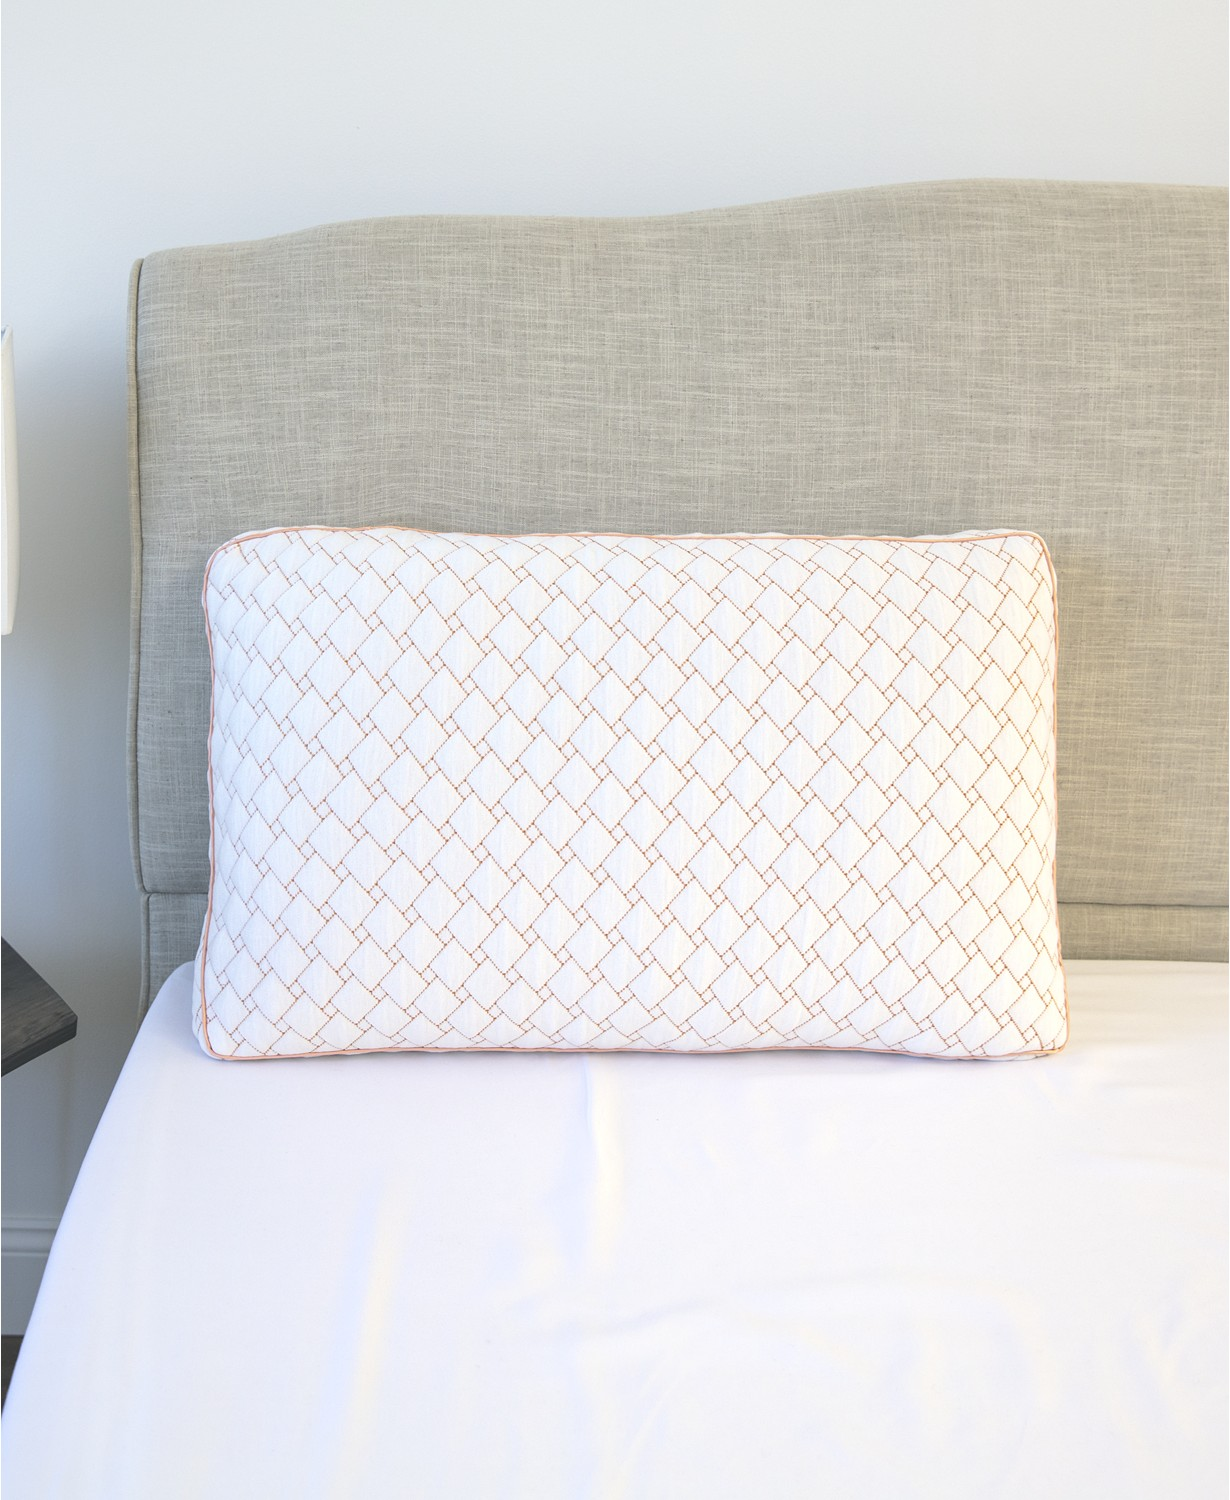 sensorgel wellness supportive memory foam cluster pillow with copper infused cover standard white